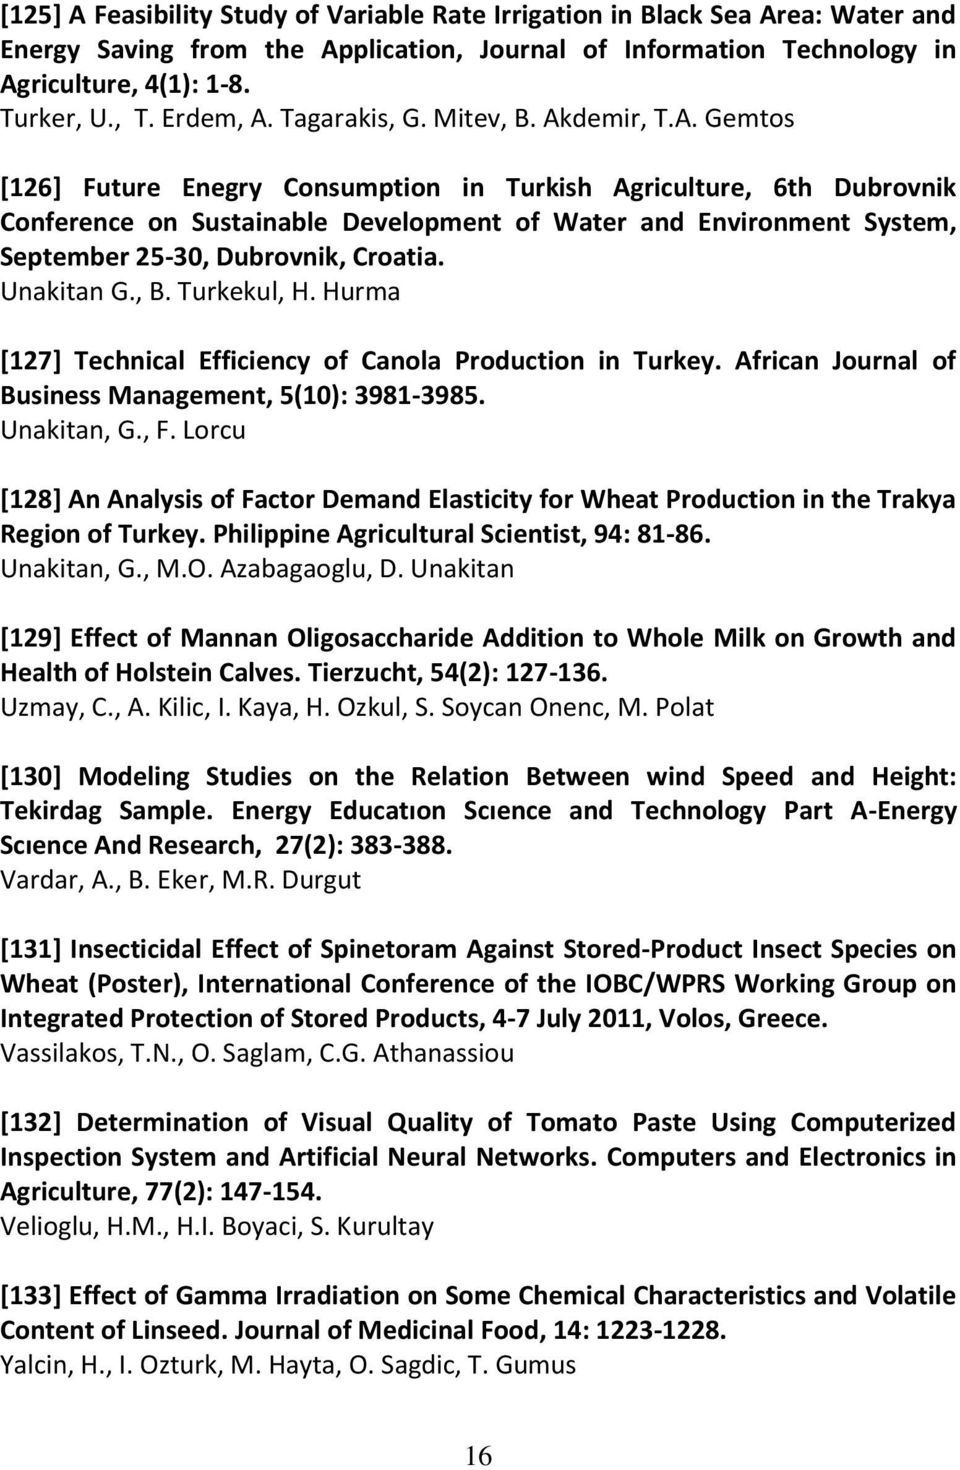 Unakitan G., B. Turkekul, H. Hurma [127] Technical Efficiency of Canola Production in Turkey. African Journal of Business Management, 5(10): 3981-3985. Unakitan, G., F.